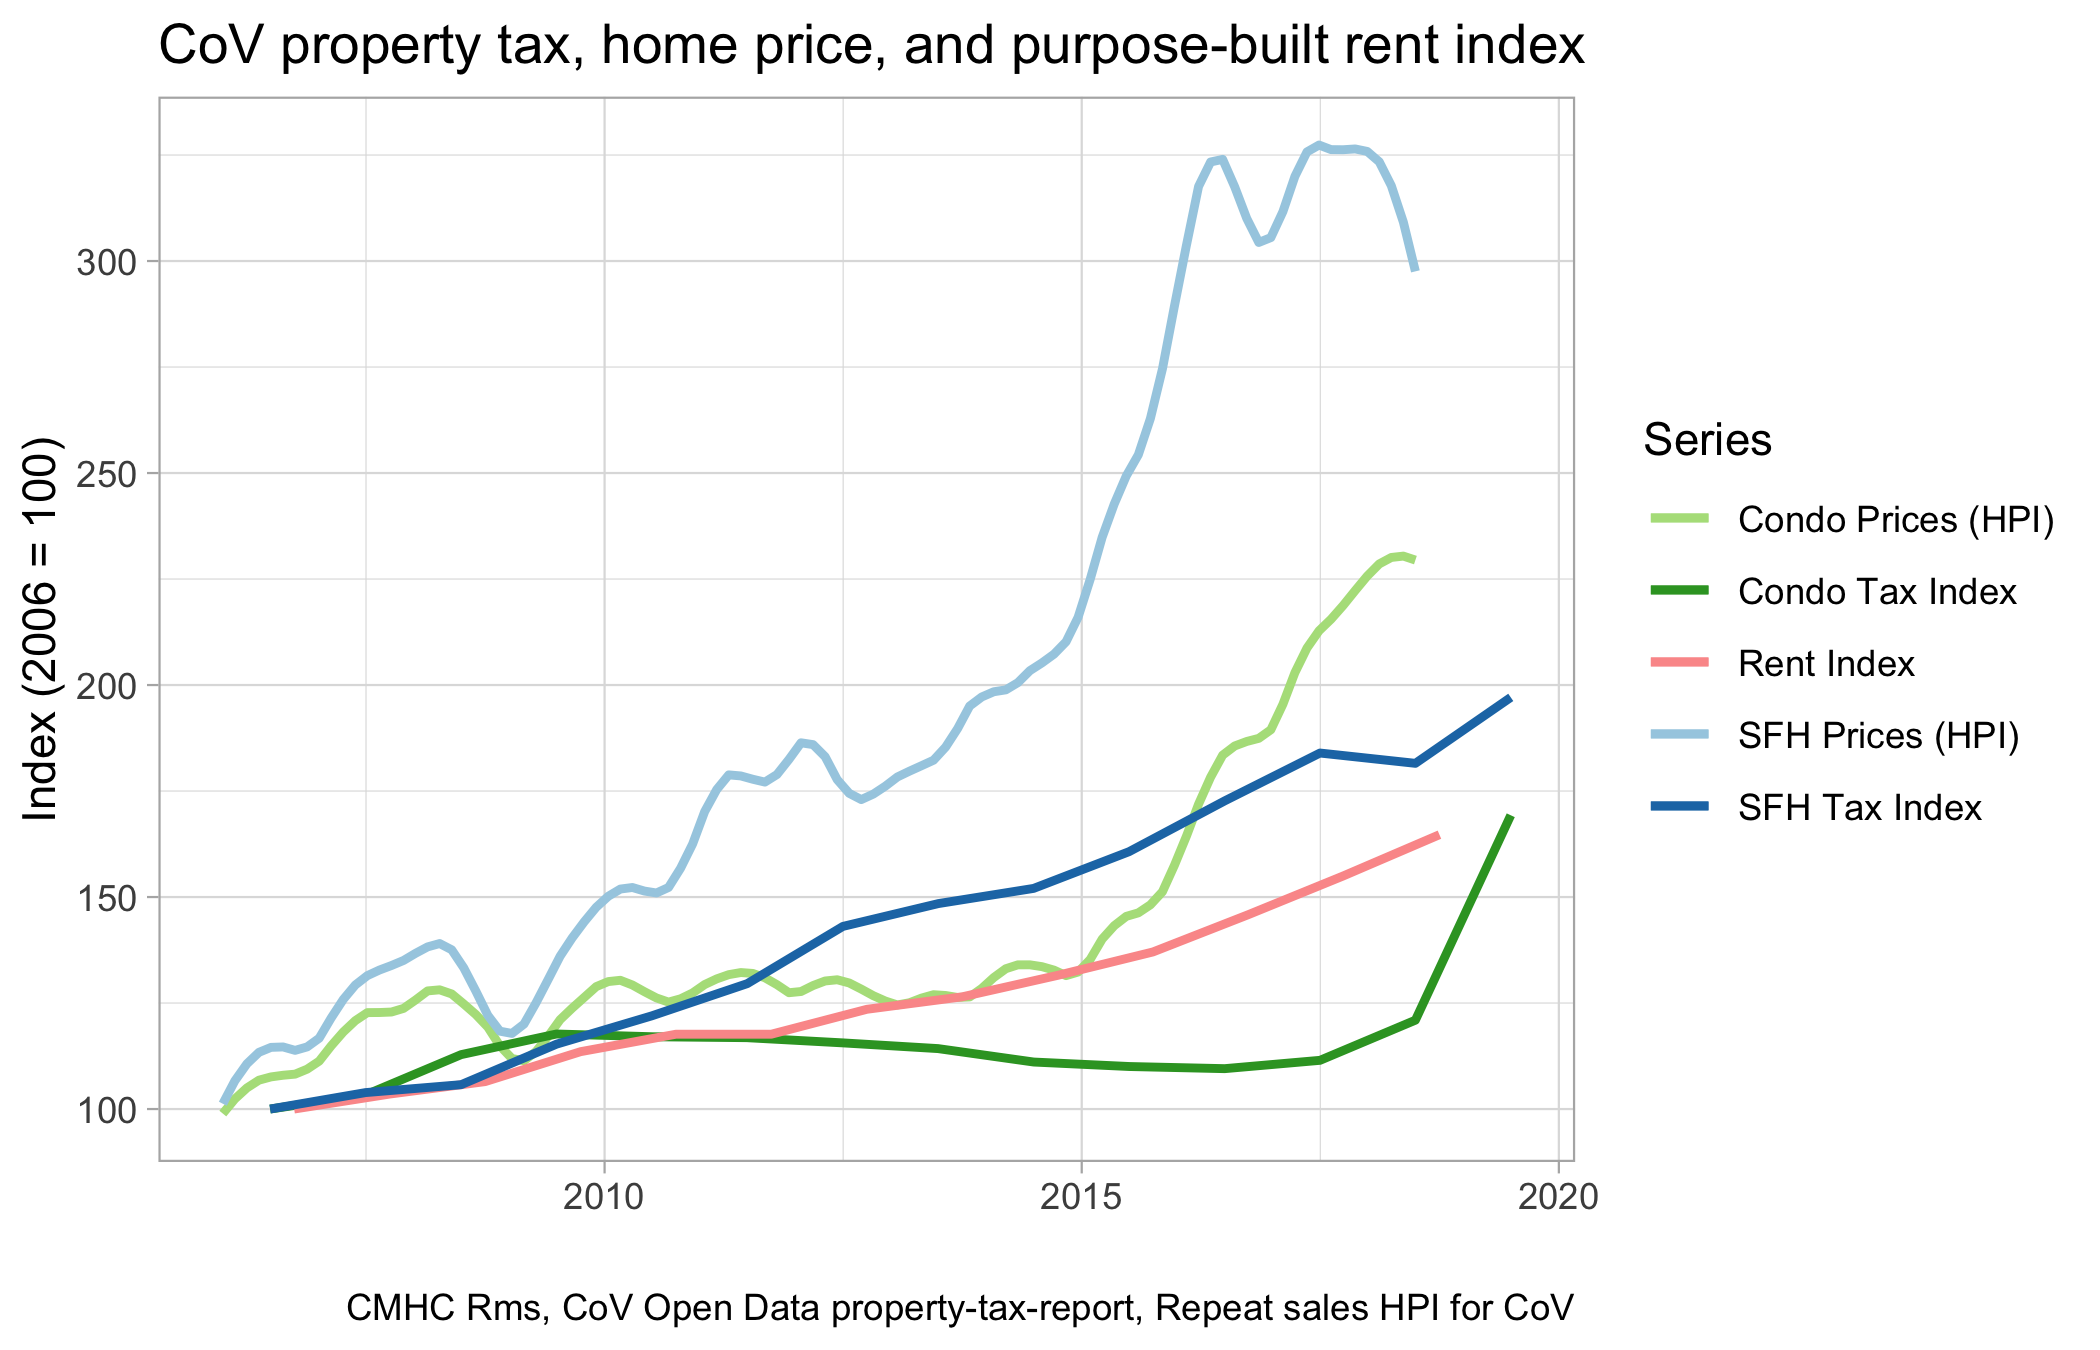 Property taxes to property values to rents